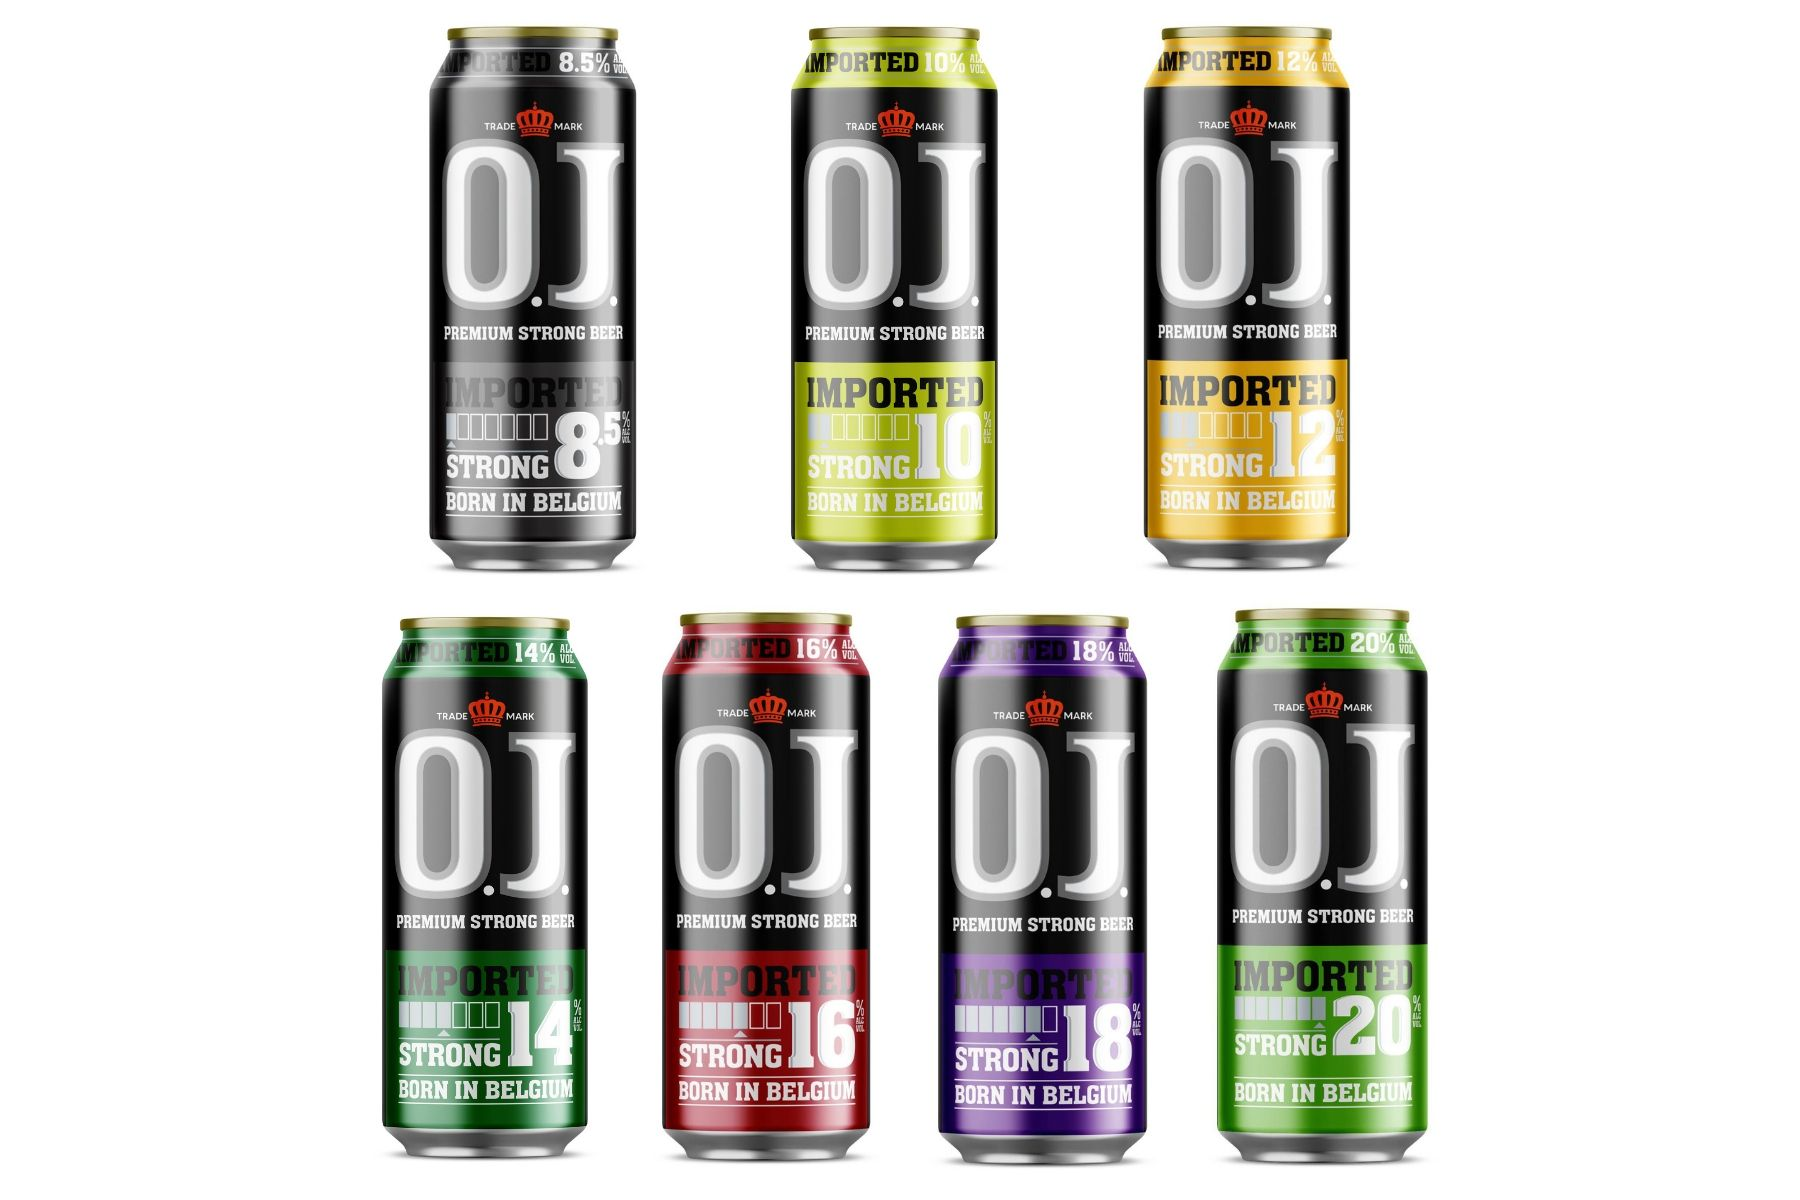 Become a distributor of O.J. Pilsener, a premium quality, light bodied beer. Buy O.J. Strong Pilsener Series, with strengths ranging from 4% to 20%. Buy from Liquor Zaar or sell O.J. in your market